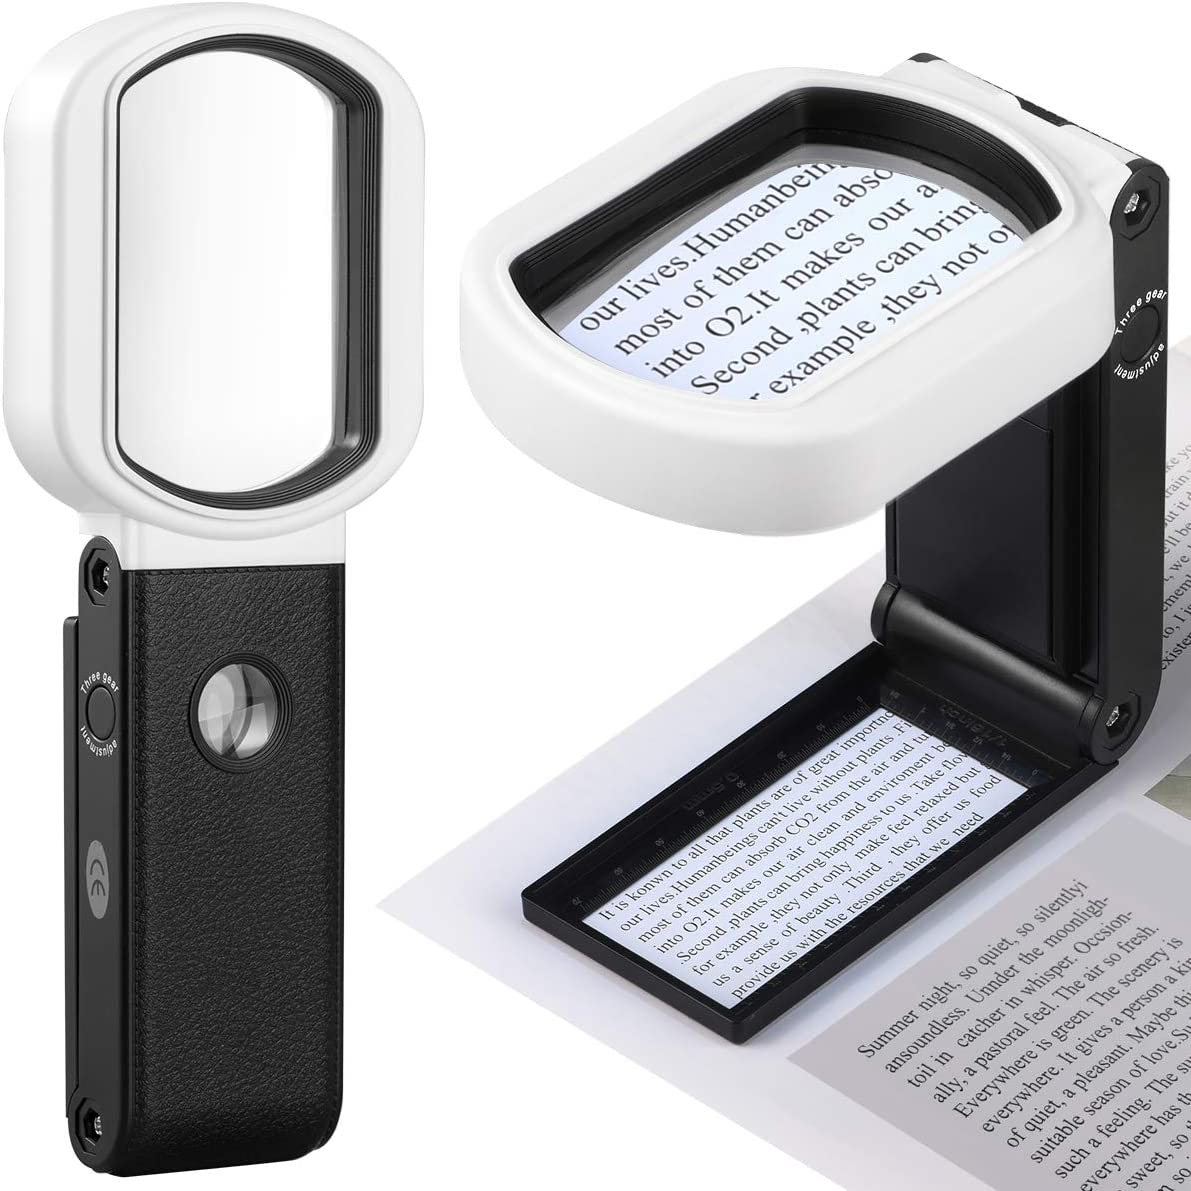 Magnifying Popular products Glass with Light 15X Handheld Magnif Challenge the lowest price of Japan 4X and Standing